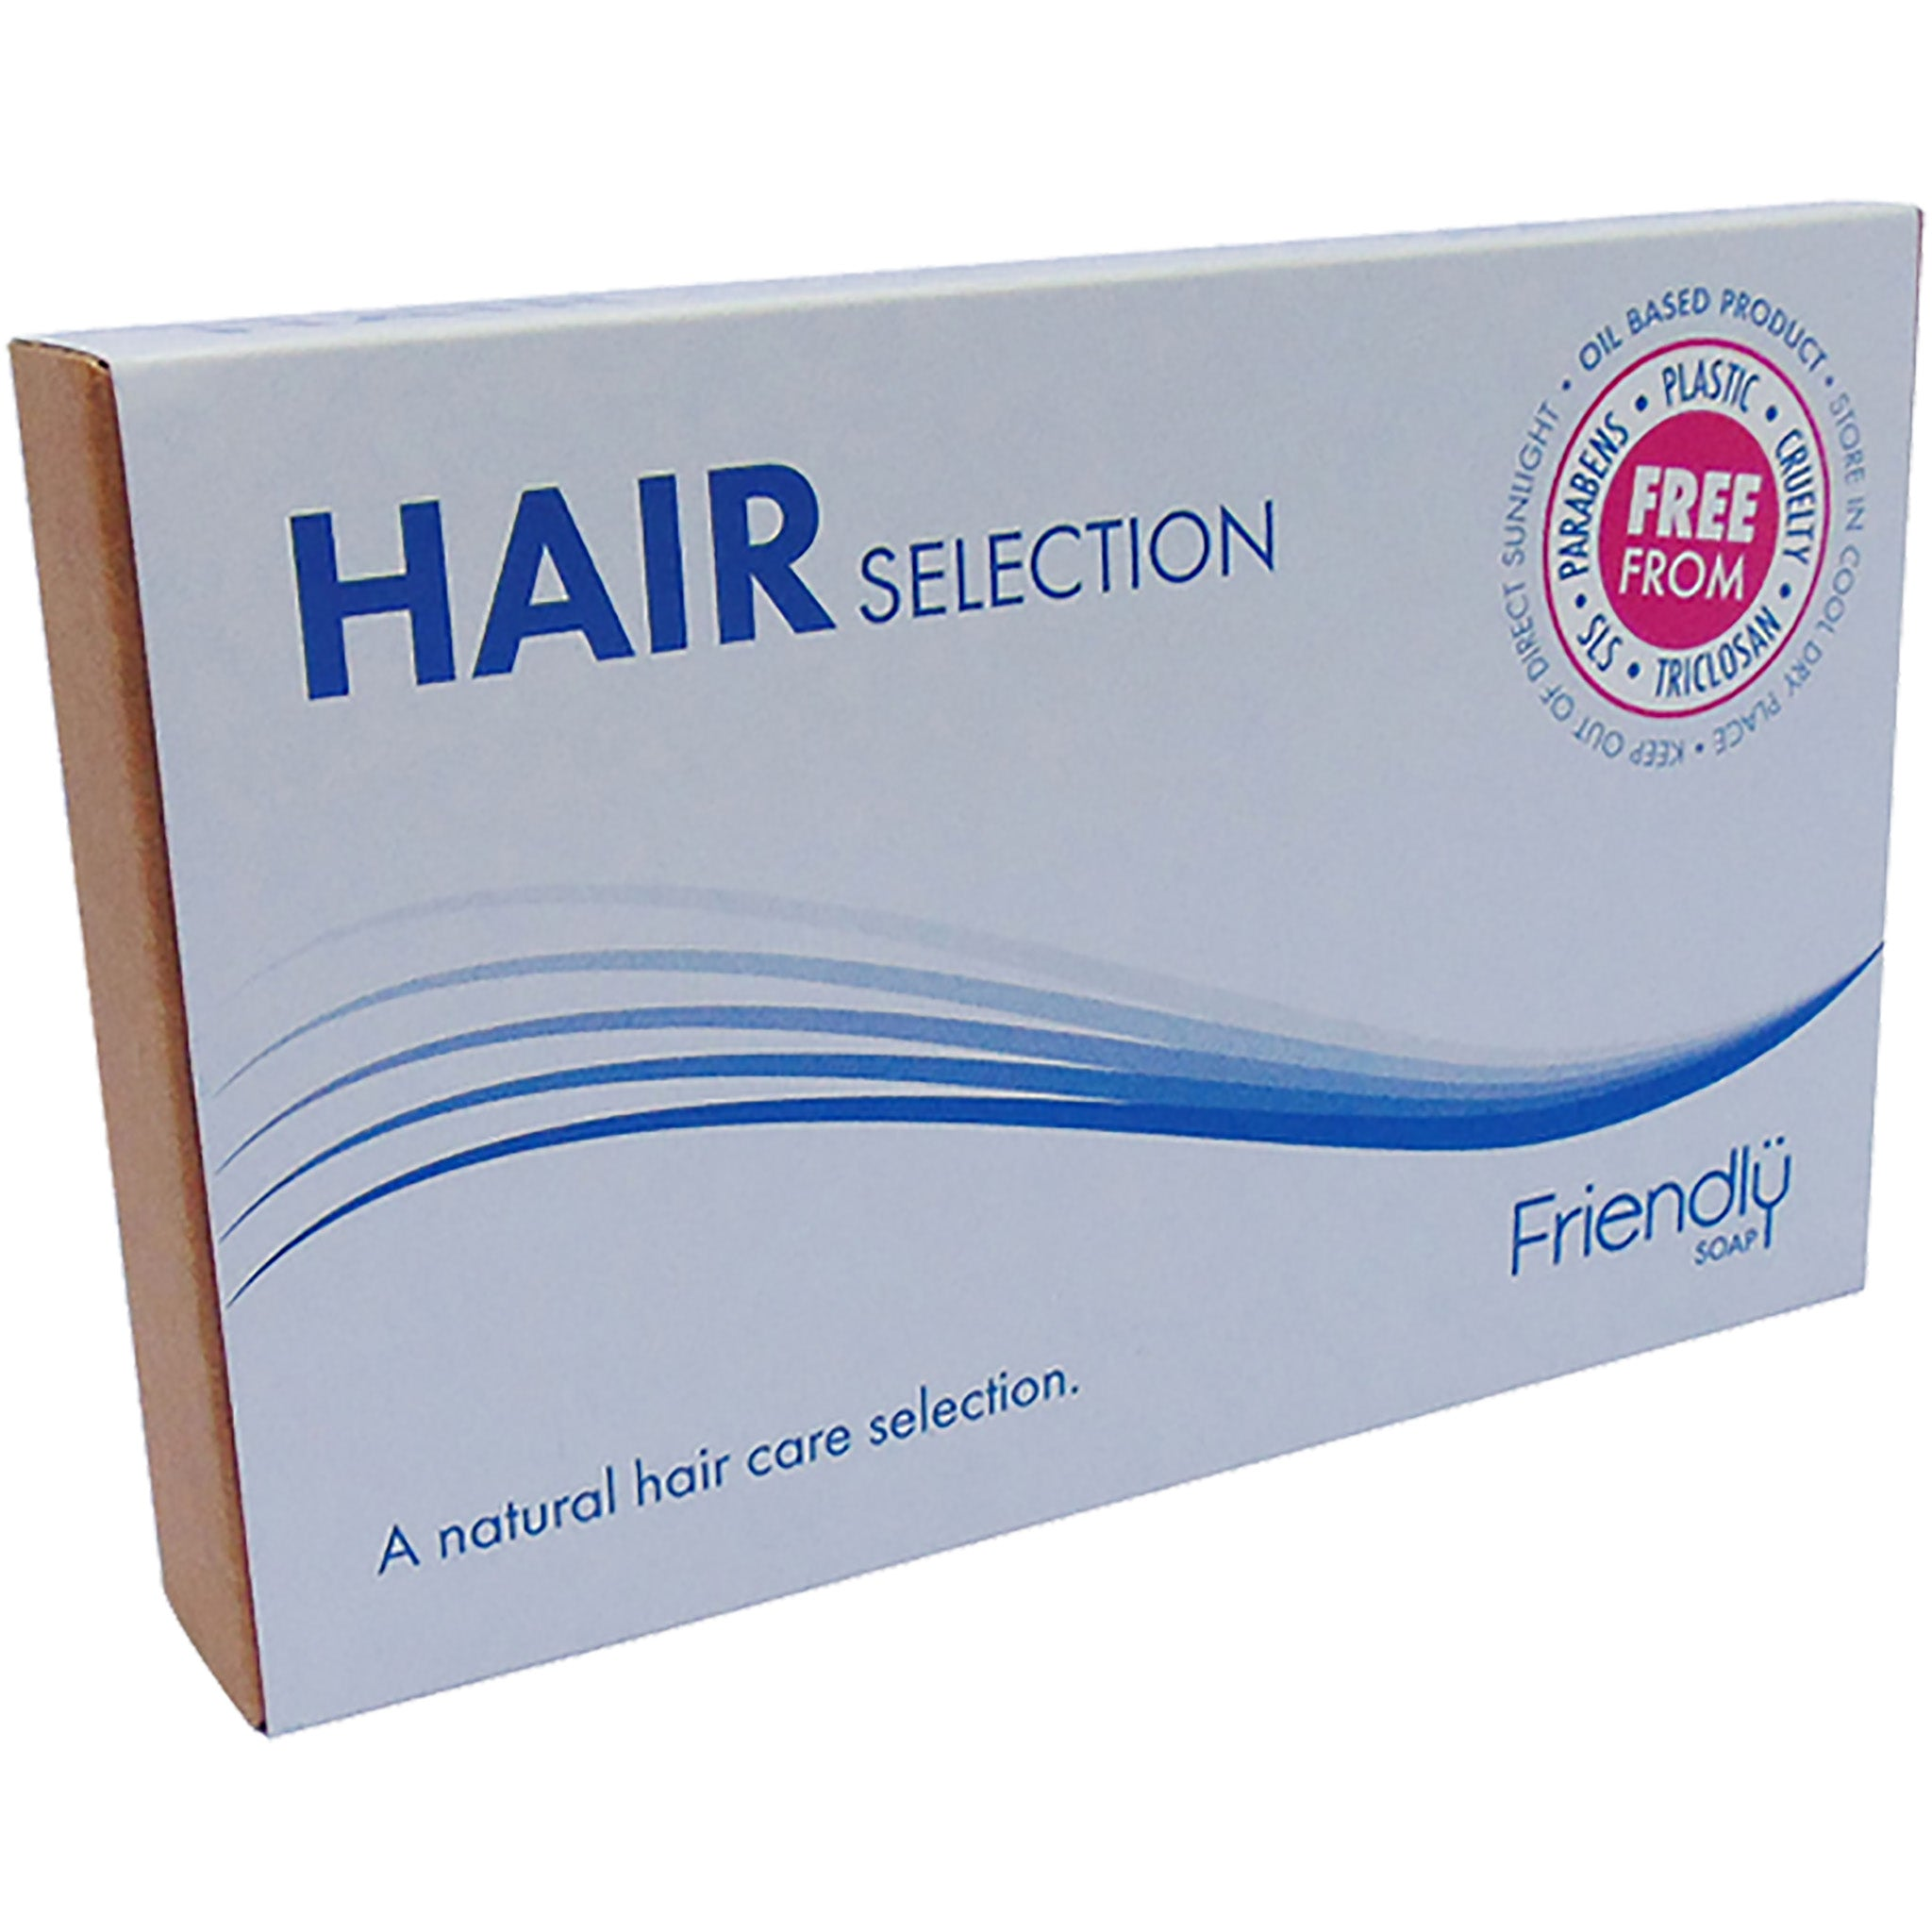 Hair Selection box